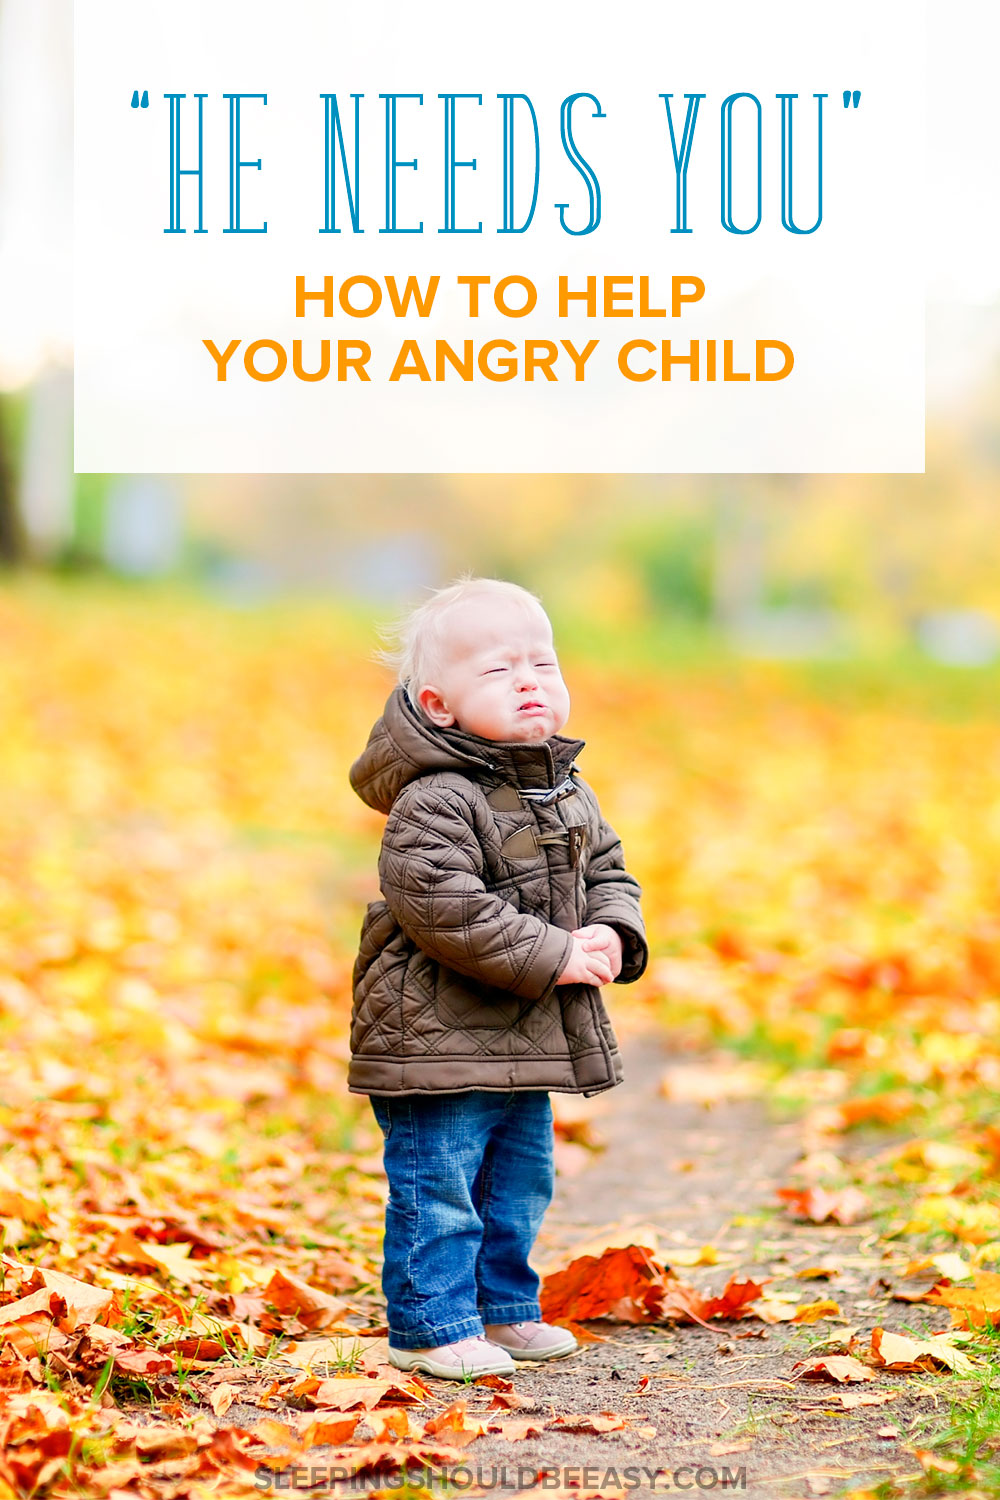 Dealing with meltdowns can be difficult, but it's during these times your angry child NEEDS you. Here are strategies to help you handle it.